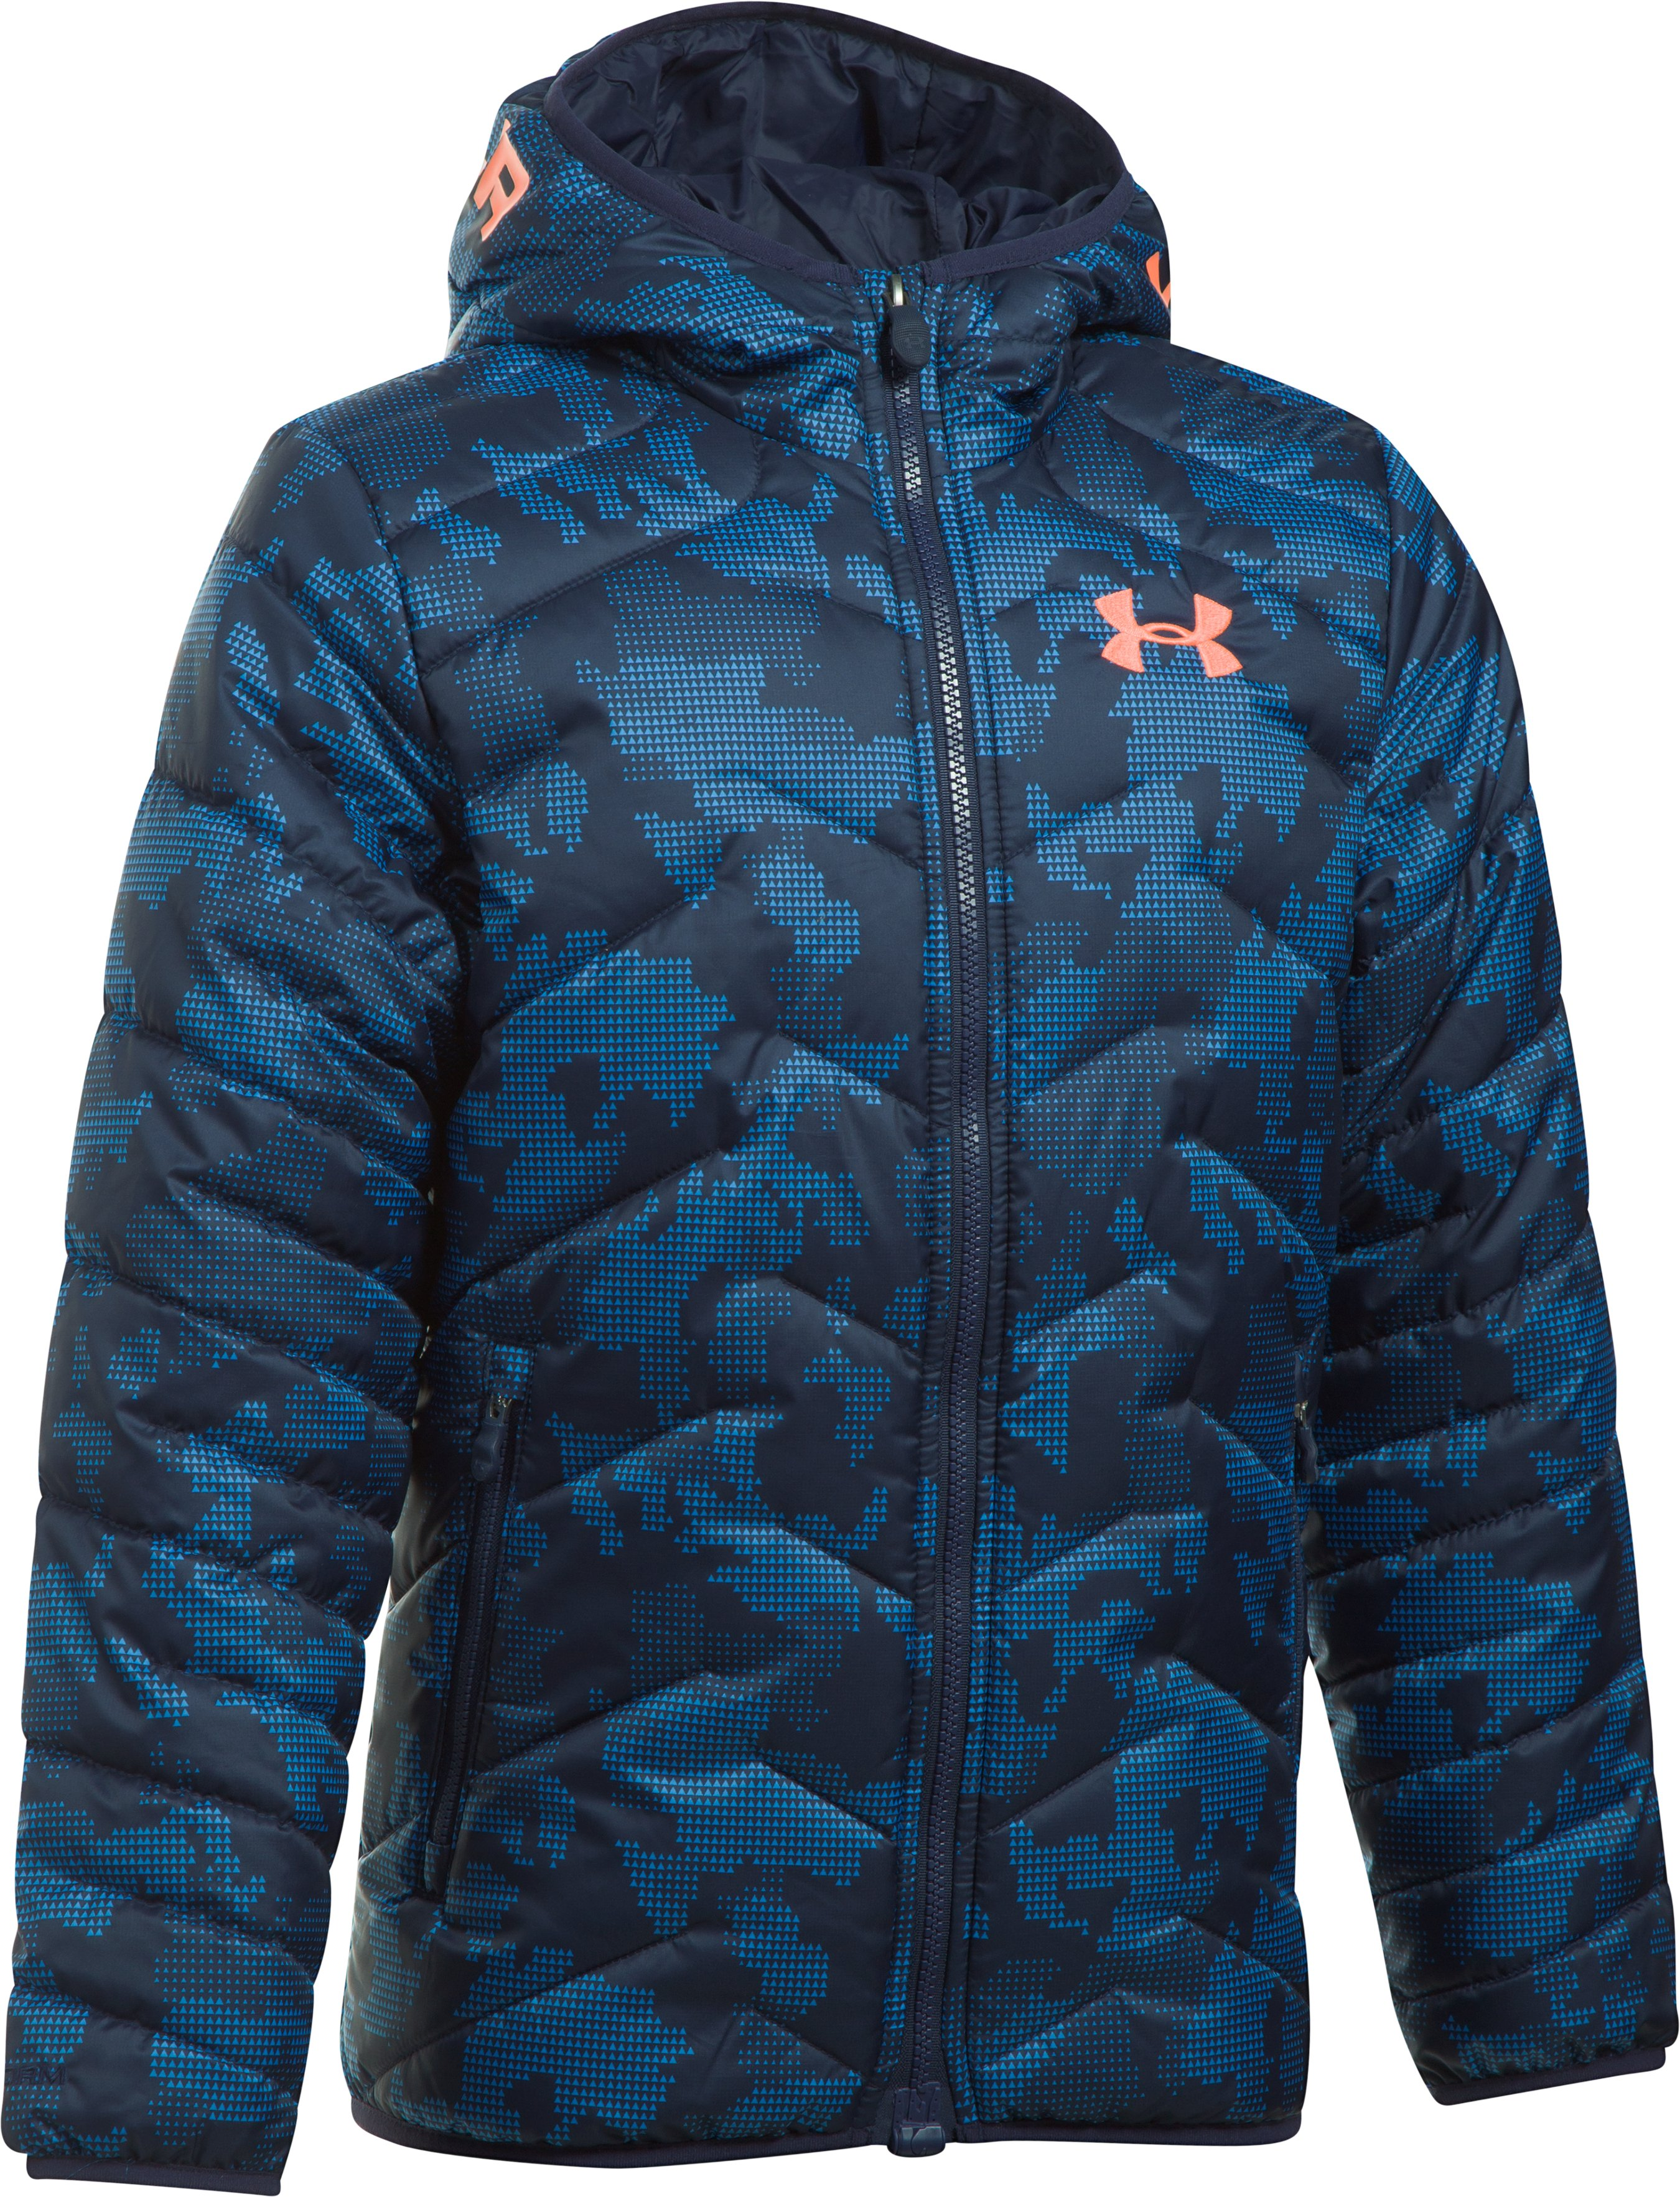 Boys' ColdGear® Reactor Hooded Jacket, Midnight Navy